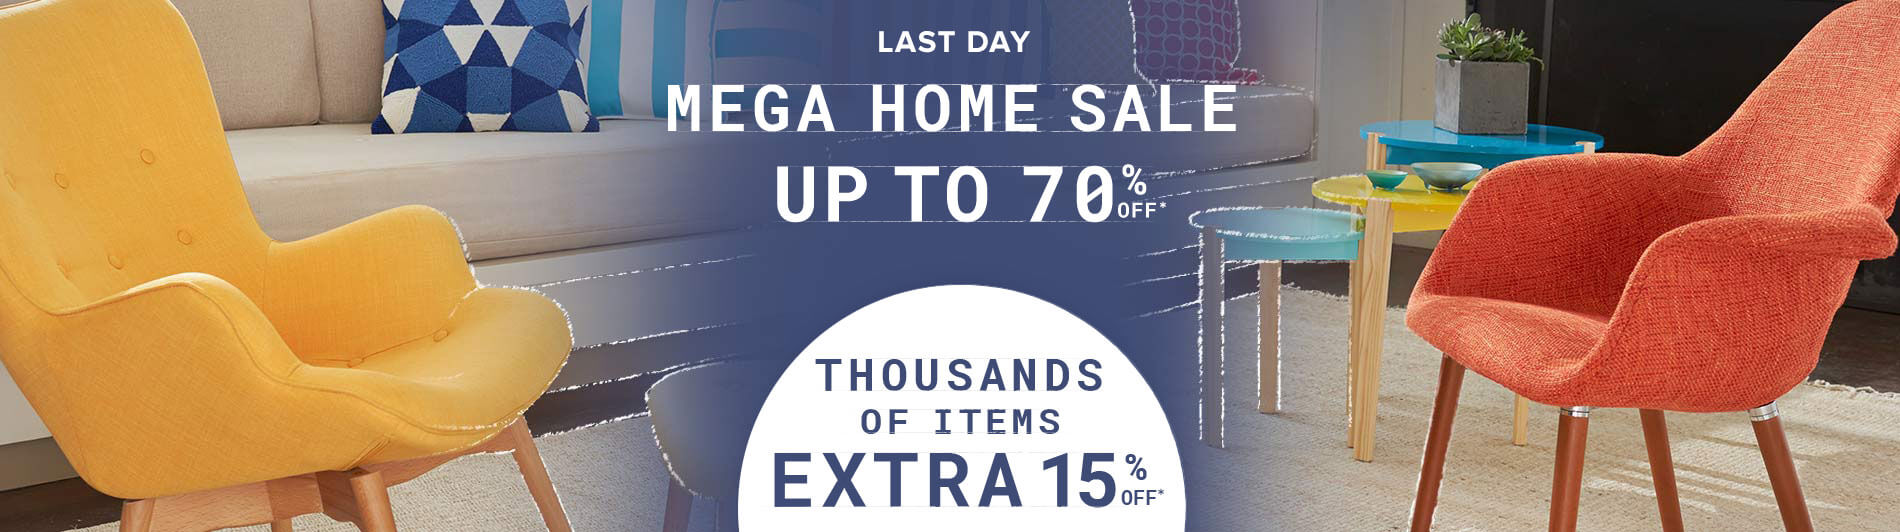 Last Day. Mega Home Sale. Up to 70% Off.